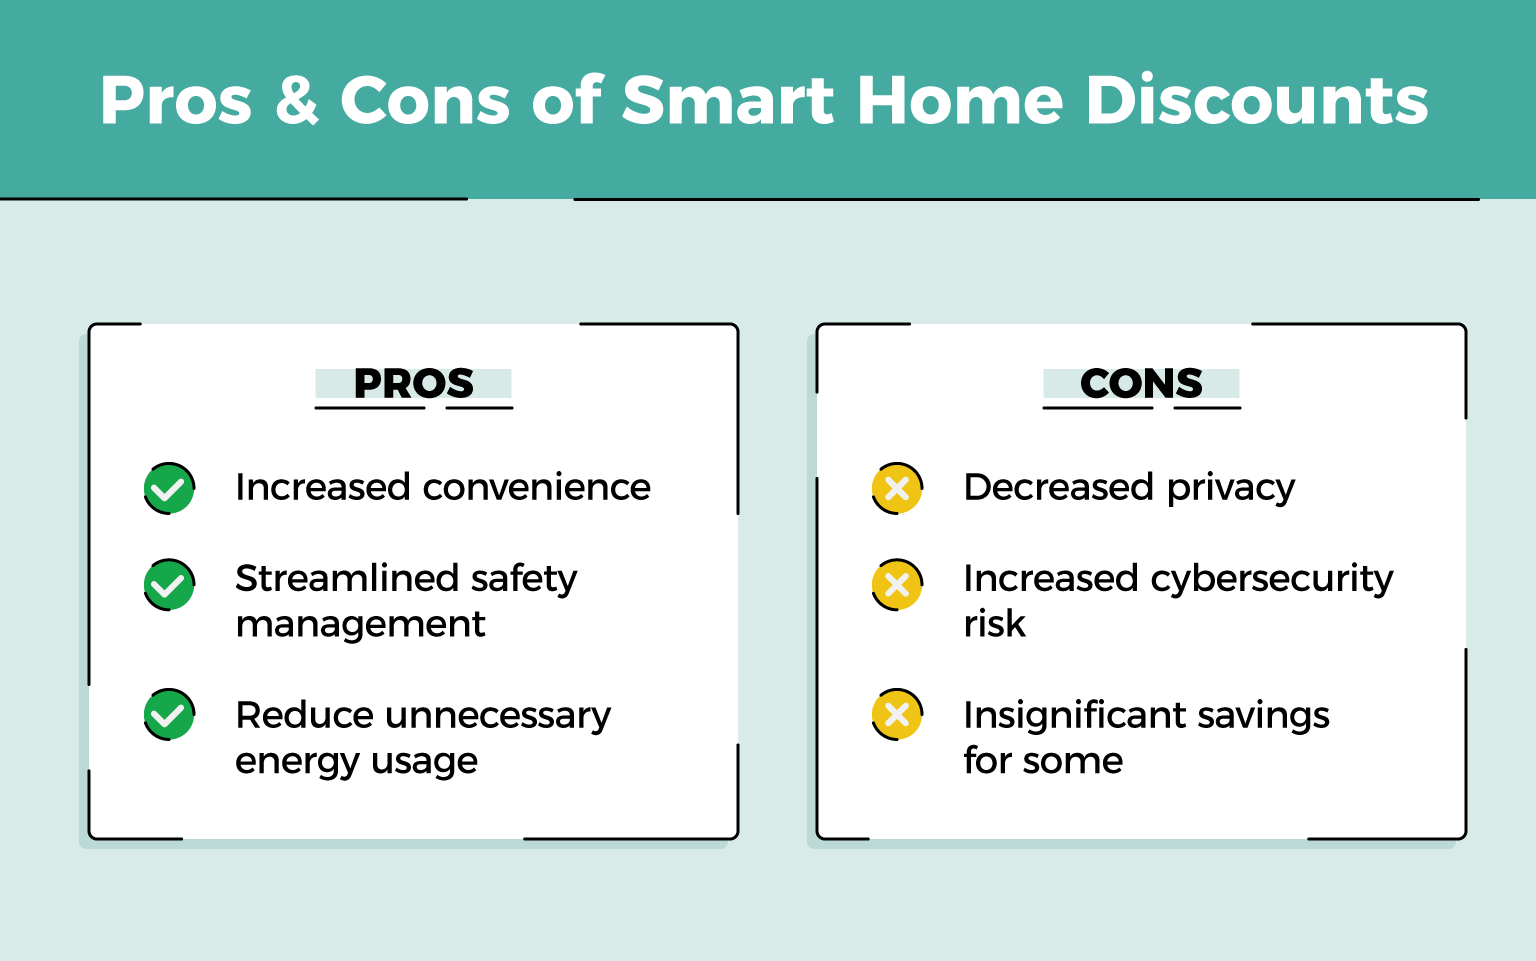 advantages and disadvantages of smart home discounts